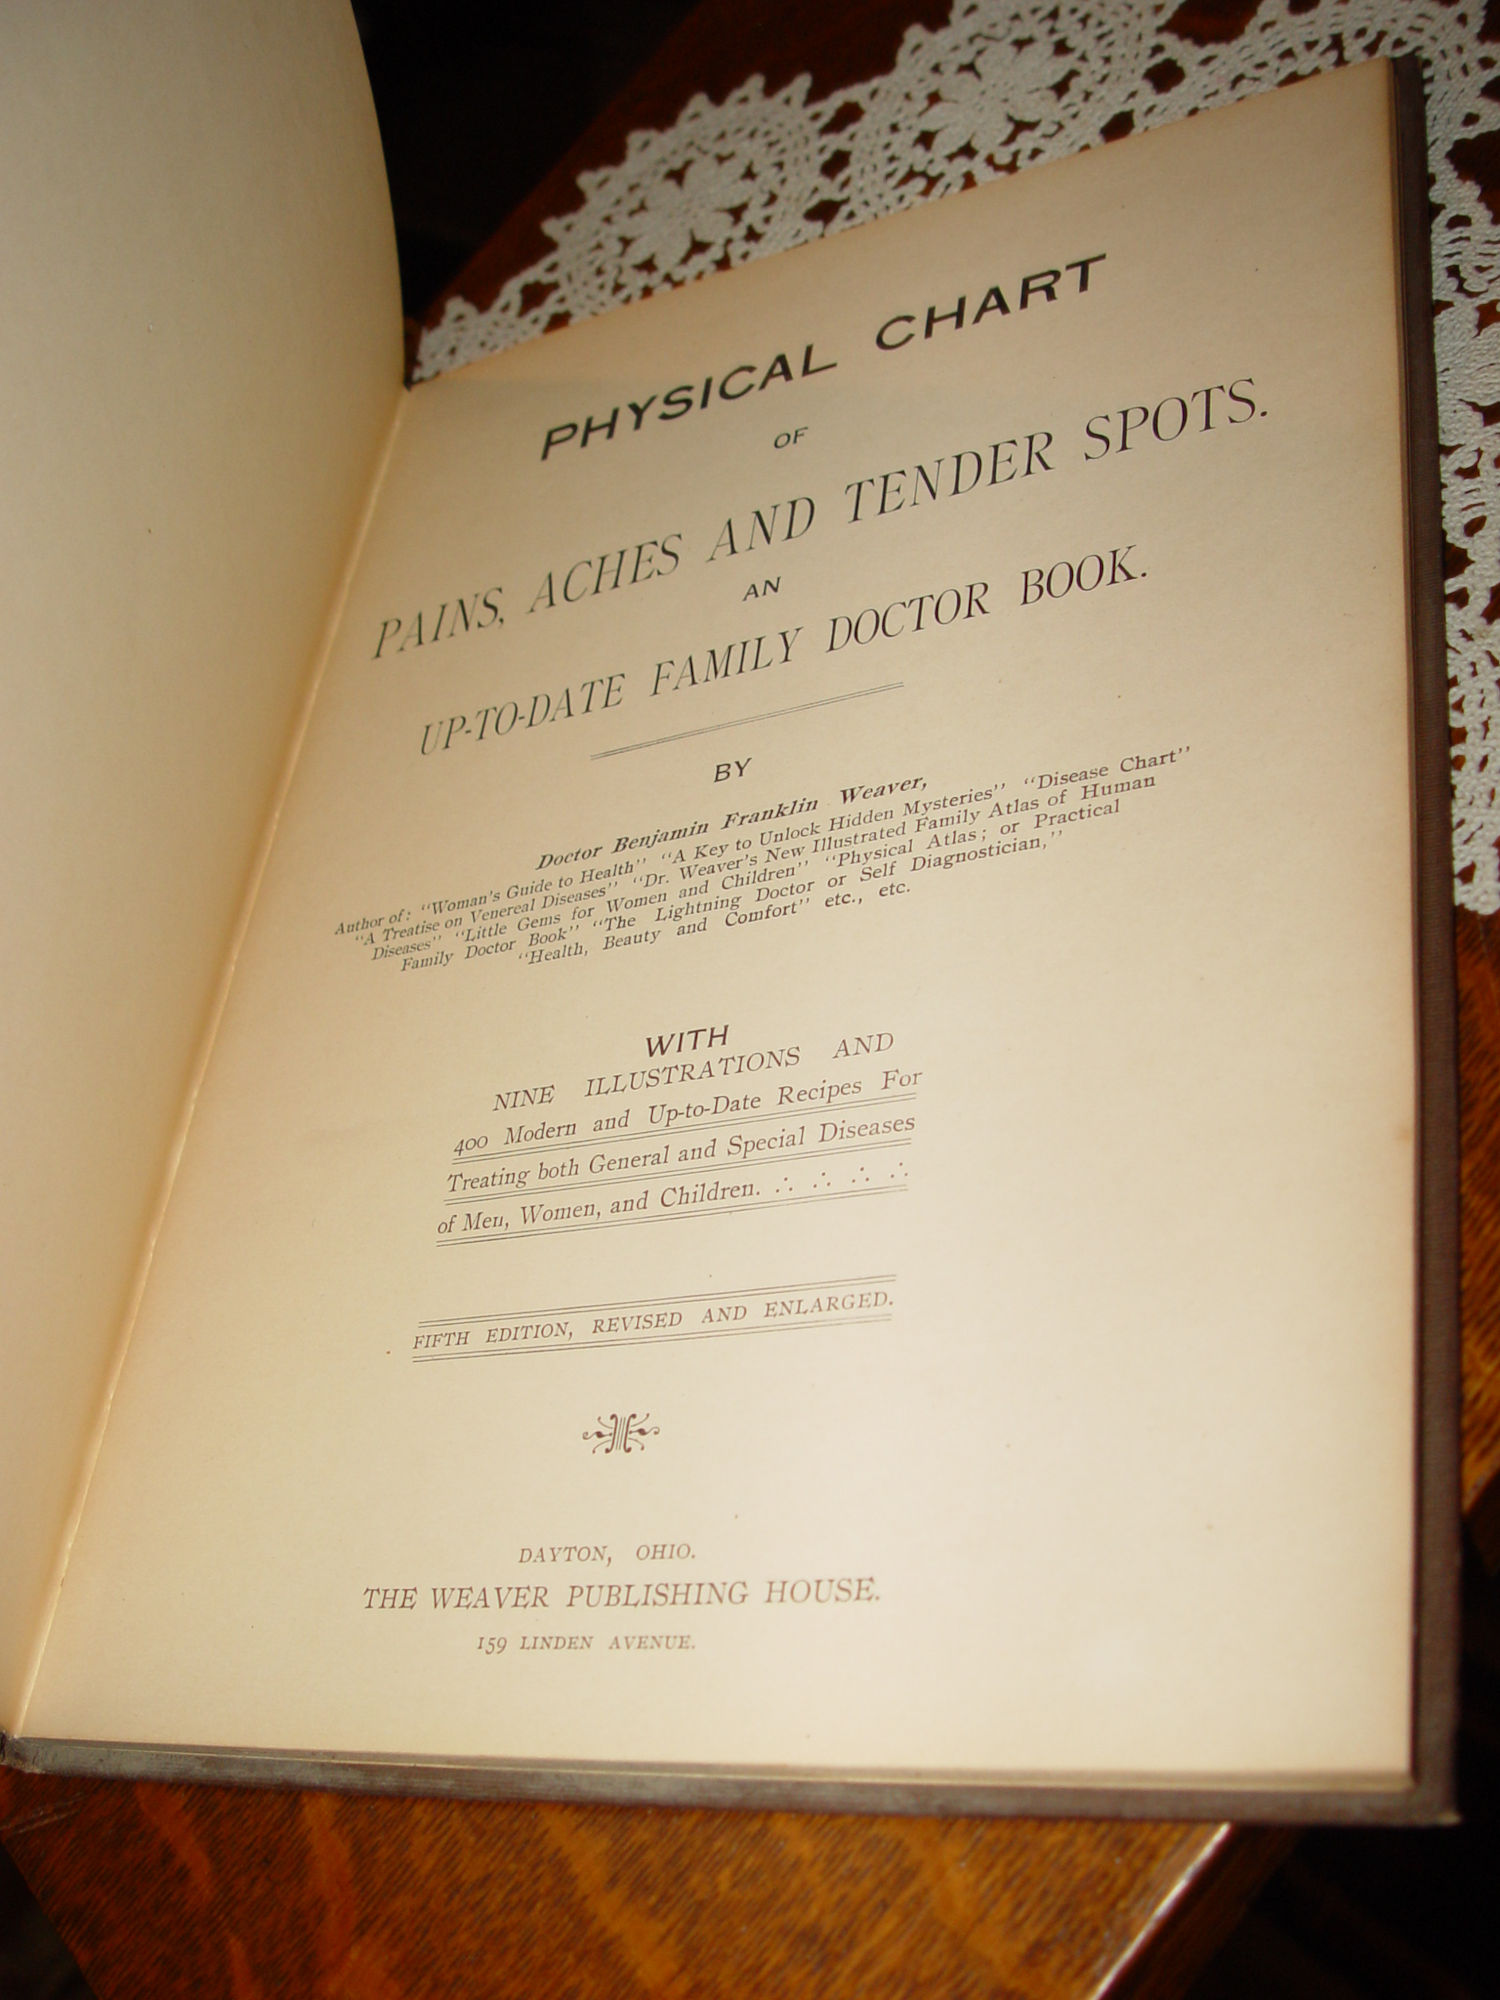 Dr. Weaver's                                         Physical Chart Pains and Aches ~                                         A Practical Family Doctor Book                                         Weaver Publ. 1911